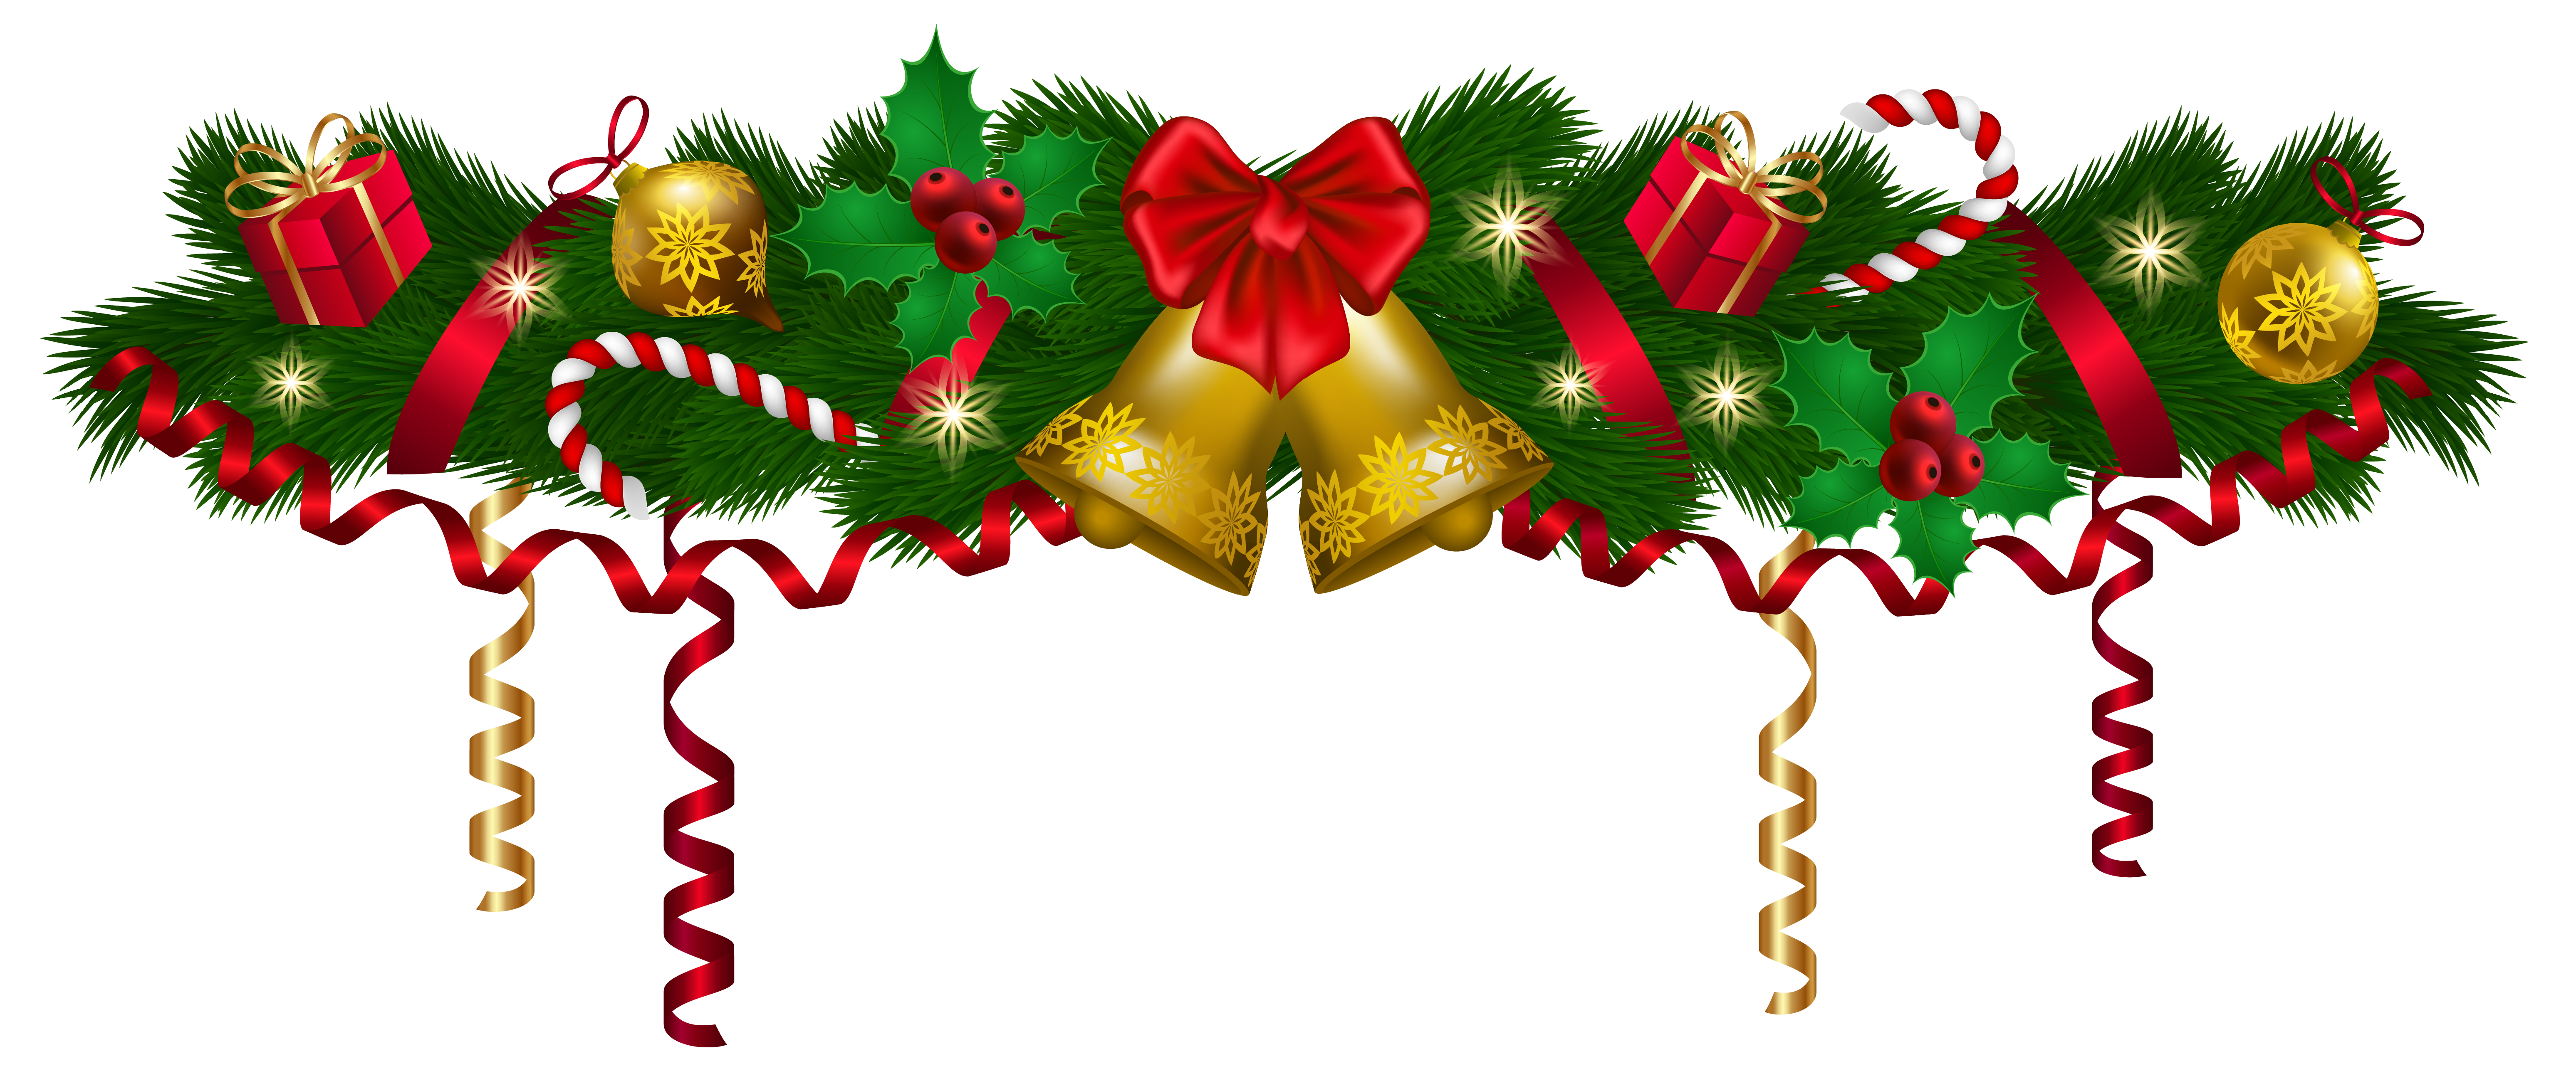 6193x2612 Christmas Deco Garland Png Clip Art Imageu200b Gallery Yopriceville